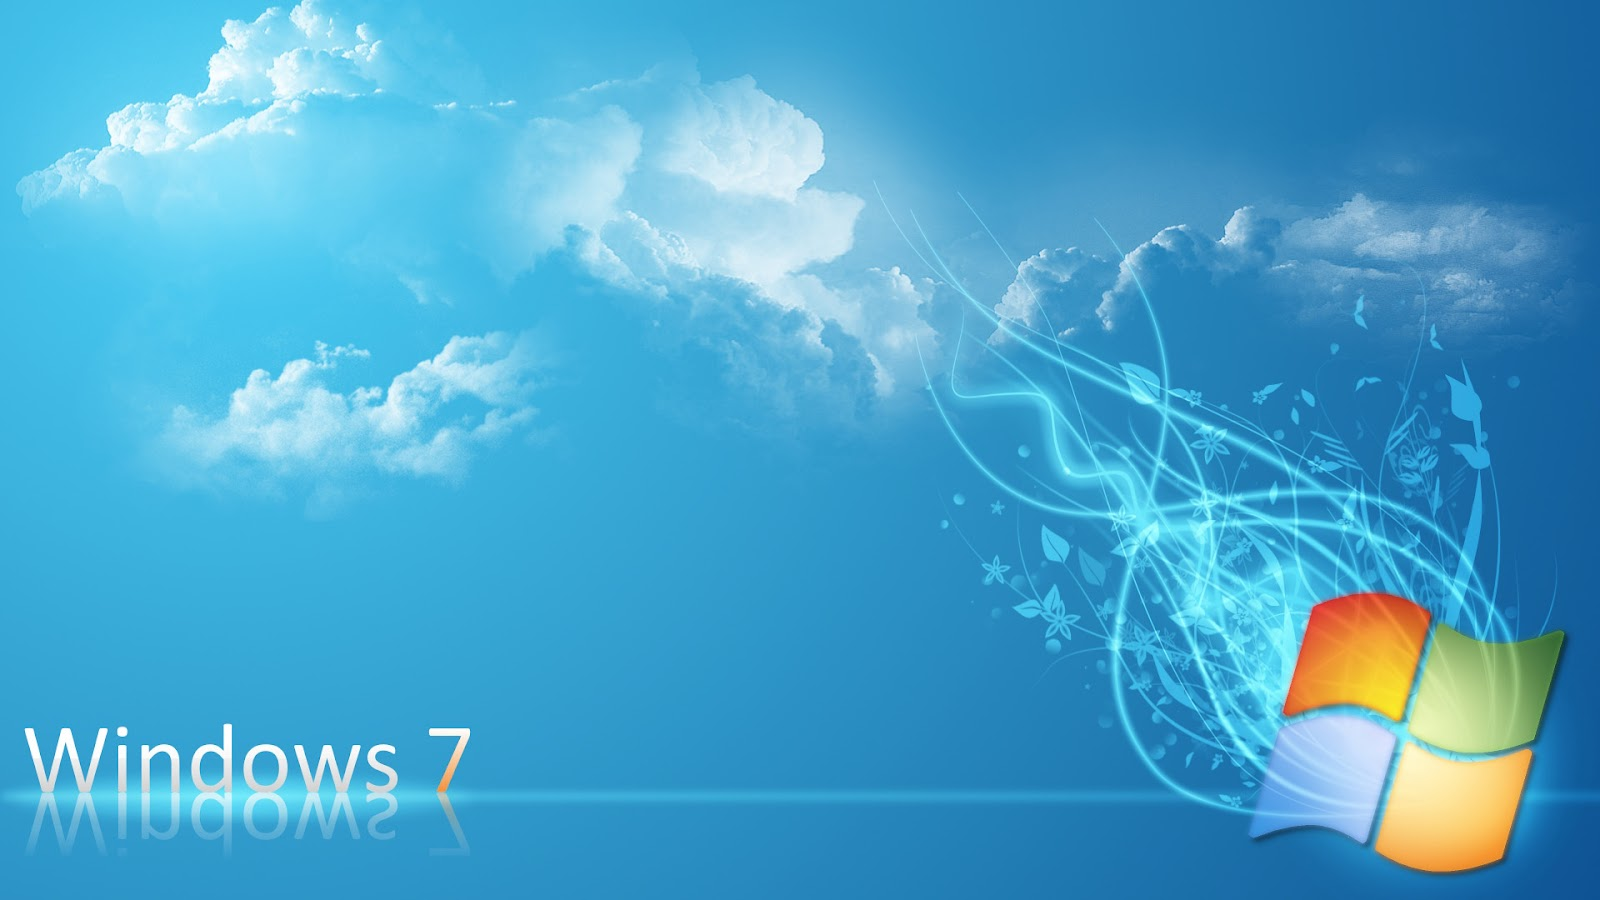 Windows 7 Blue And Light Colored HD Wallpapers